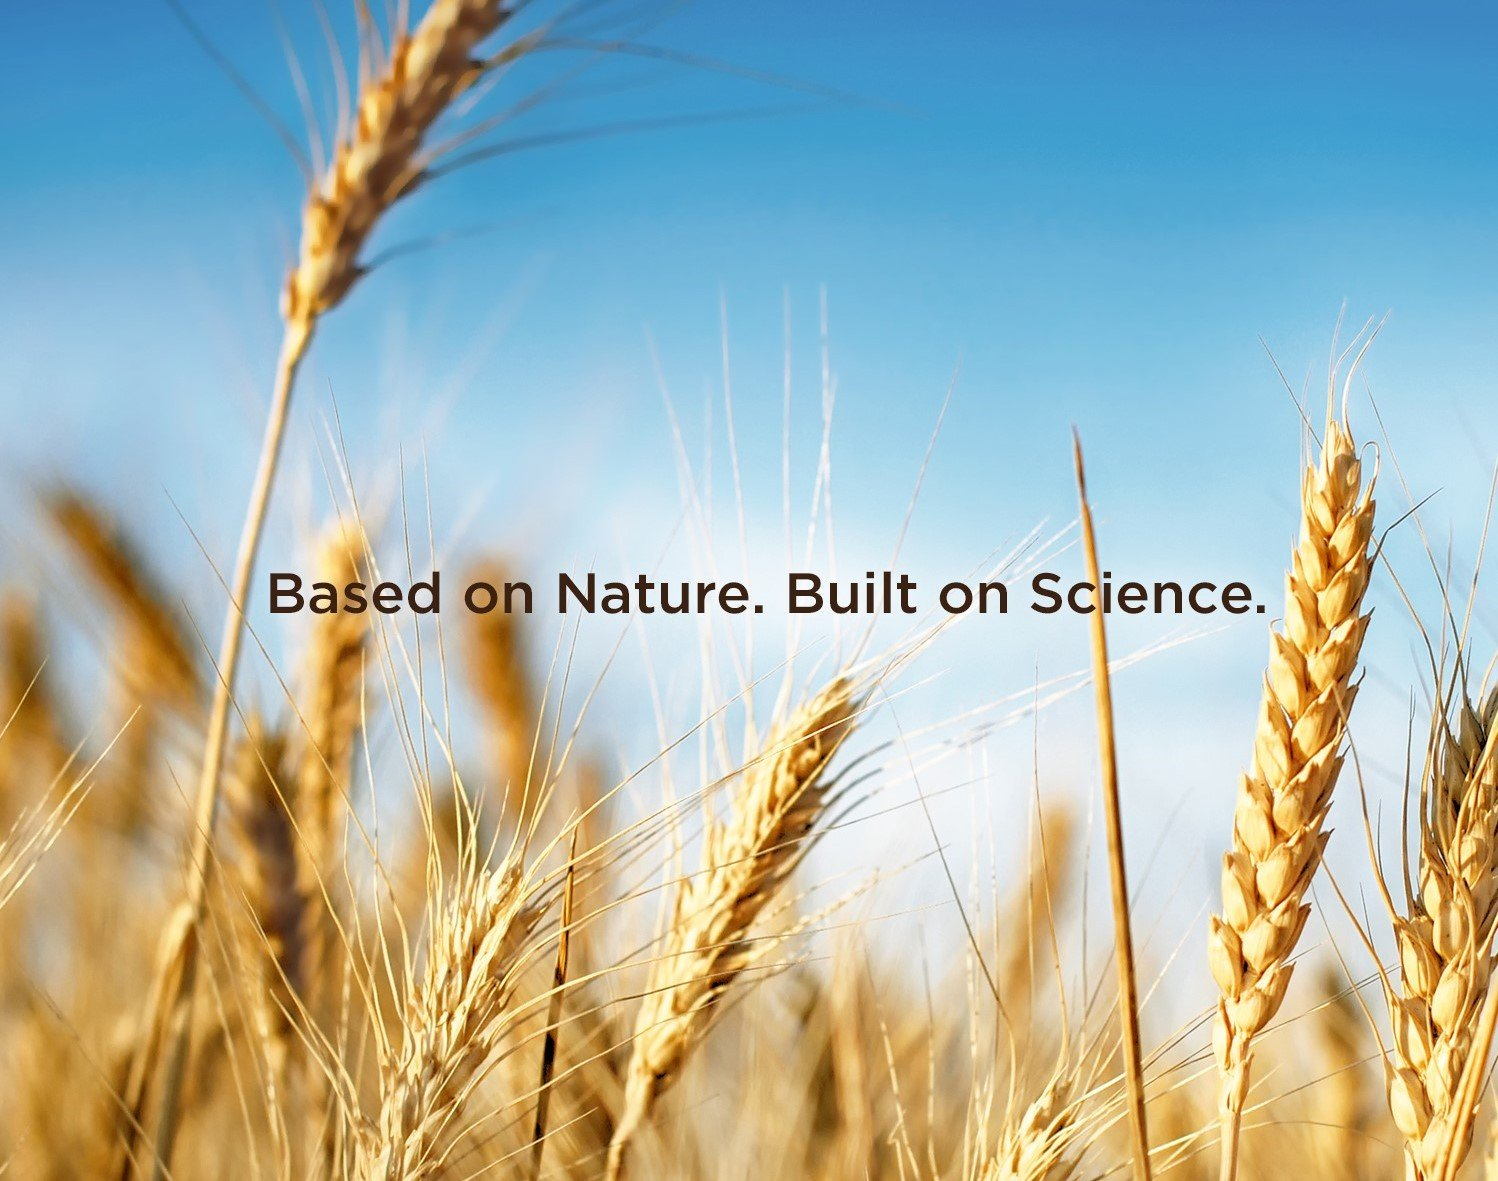 Agricen-based-on-nature